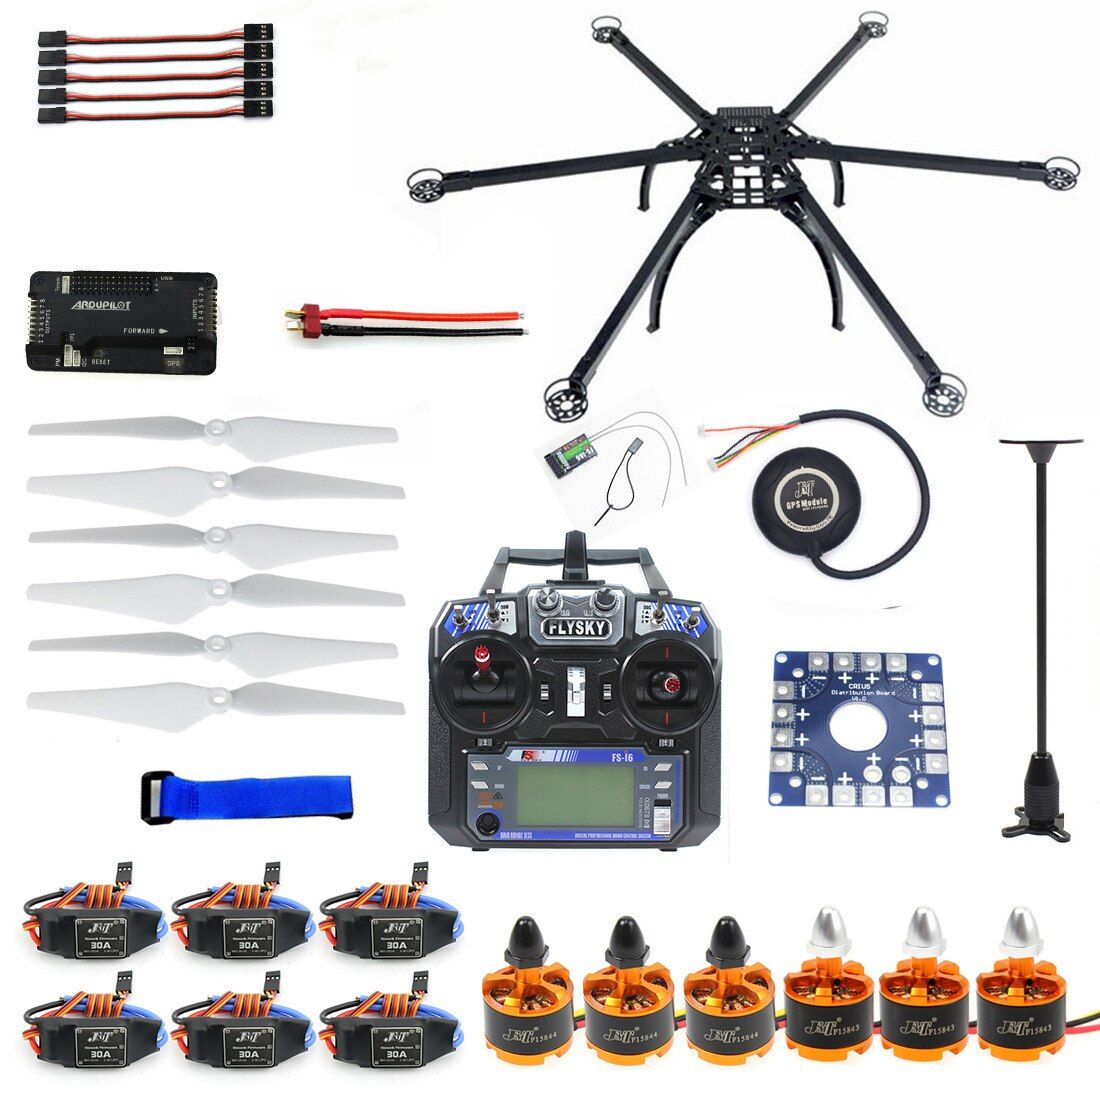 Sechs-achse Hexacopter Unmontiert GPS Drone Kit mit Flysky FS-i6 6CH 2,4g TX & RX APM 2,8 Multicopter flight Controller F10513-F